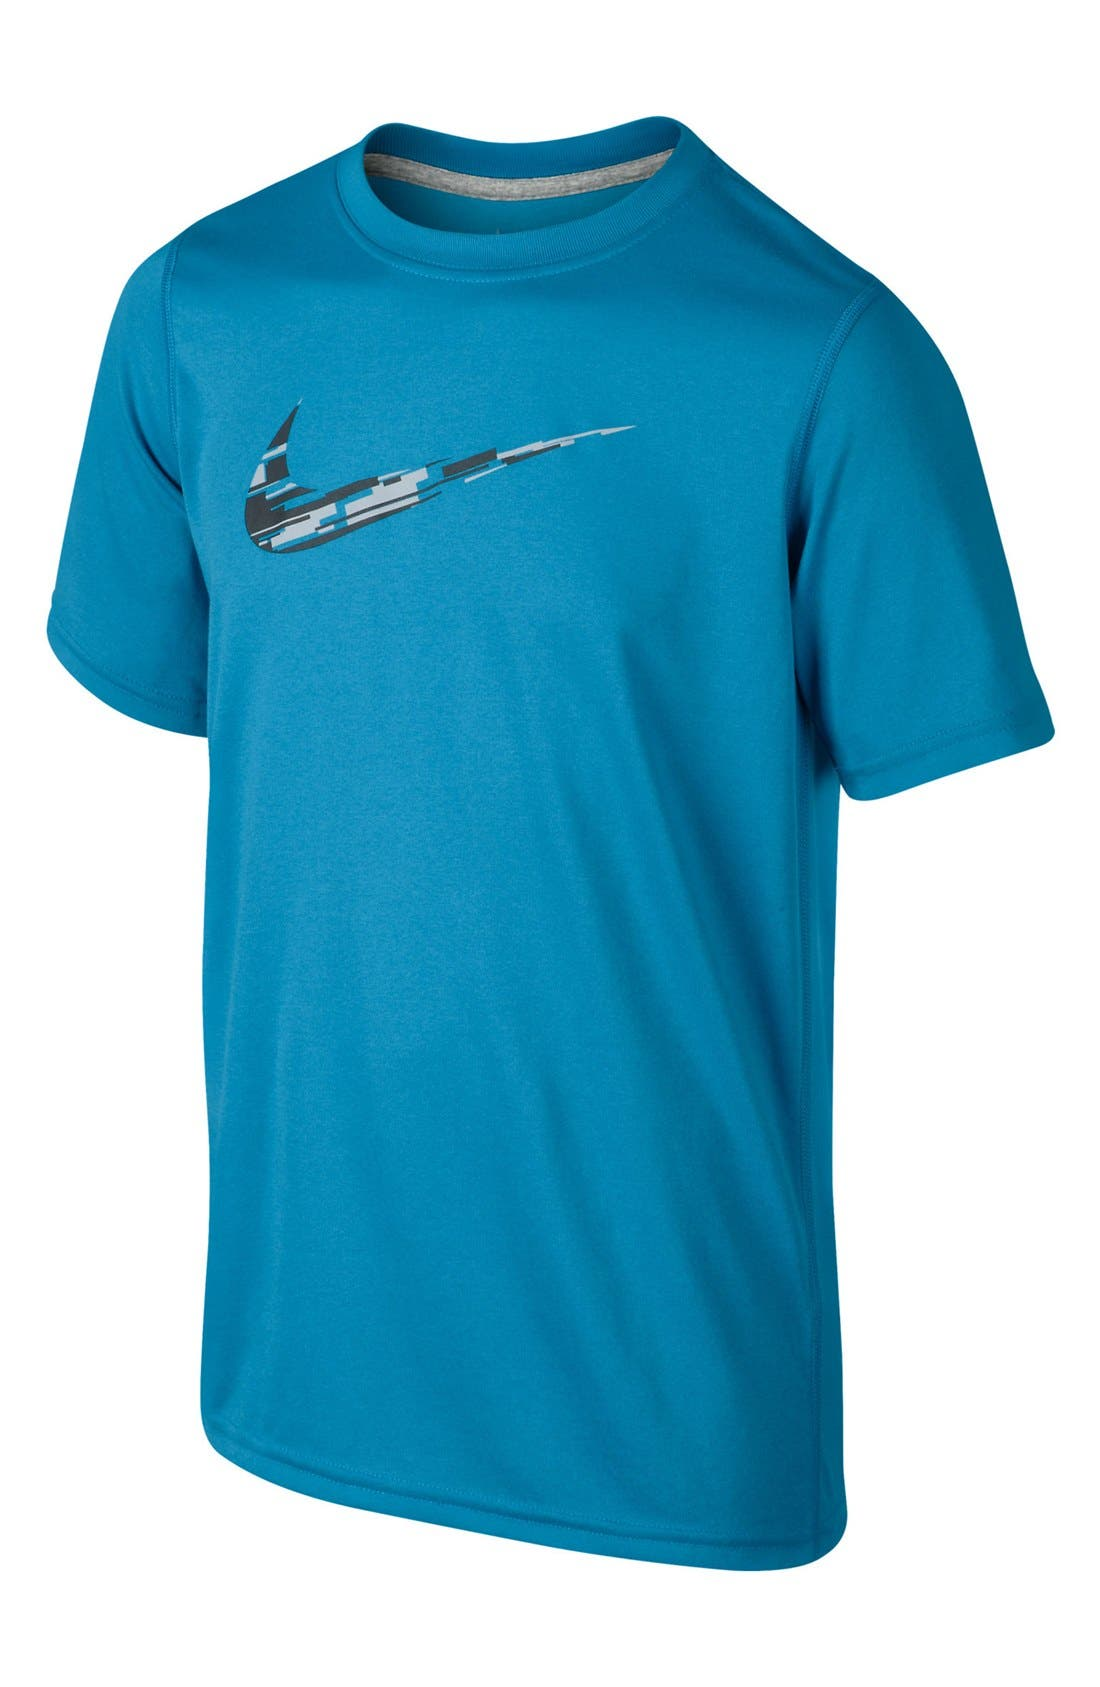 Main Image - Nike 'Legend - Rain Camo' Dri-FIT T-Shirt (Big Boys)